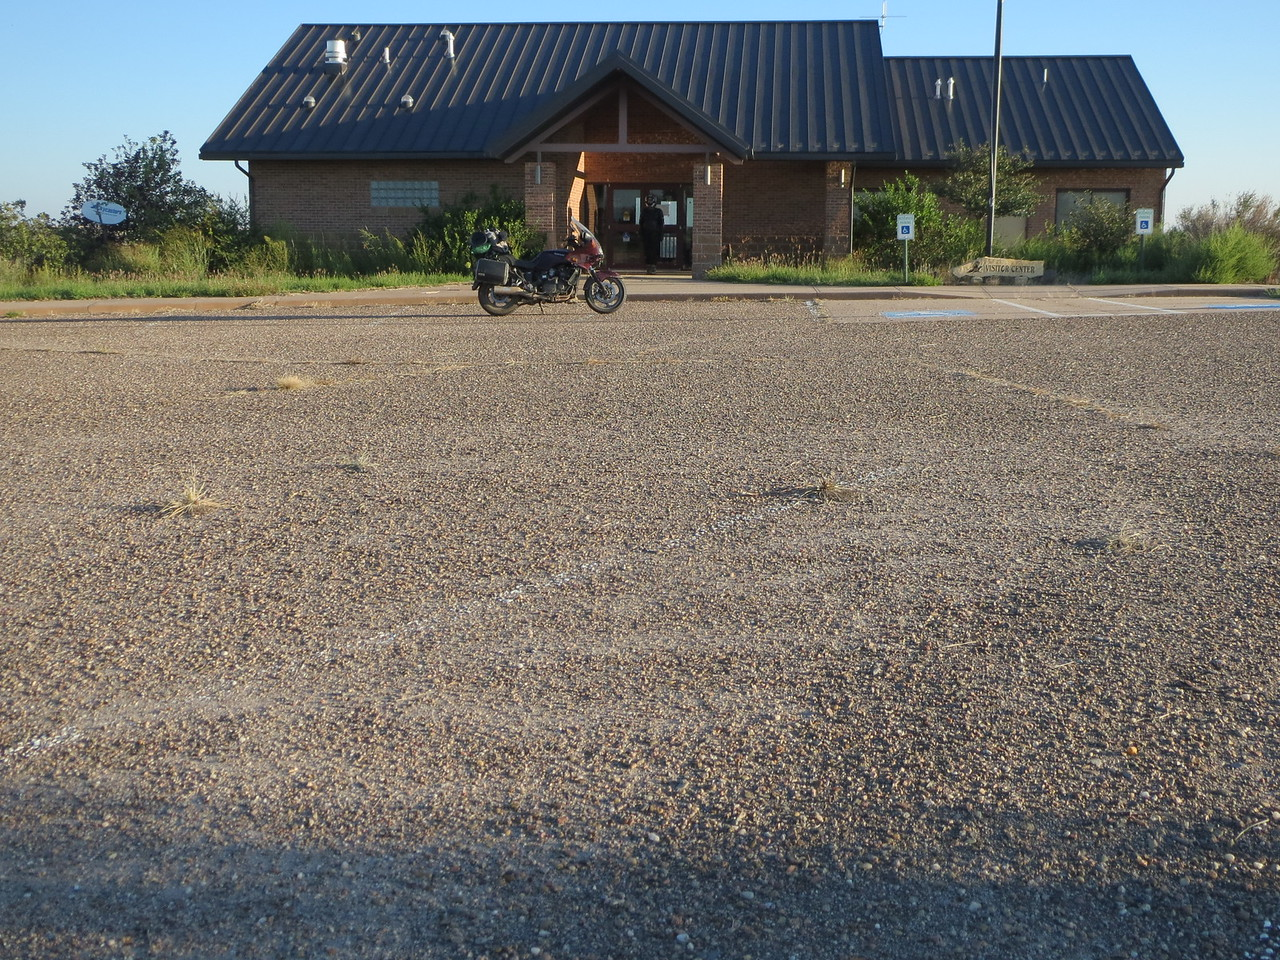 Day 6 (970 miles): Waking up and leaving the abandoned ranger station at Bonny Lake State Park